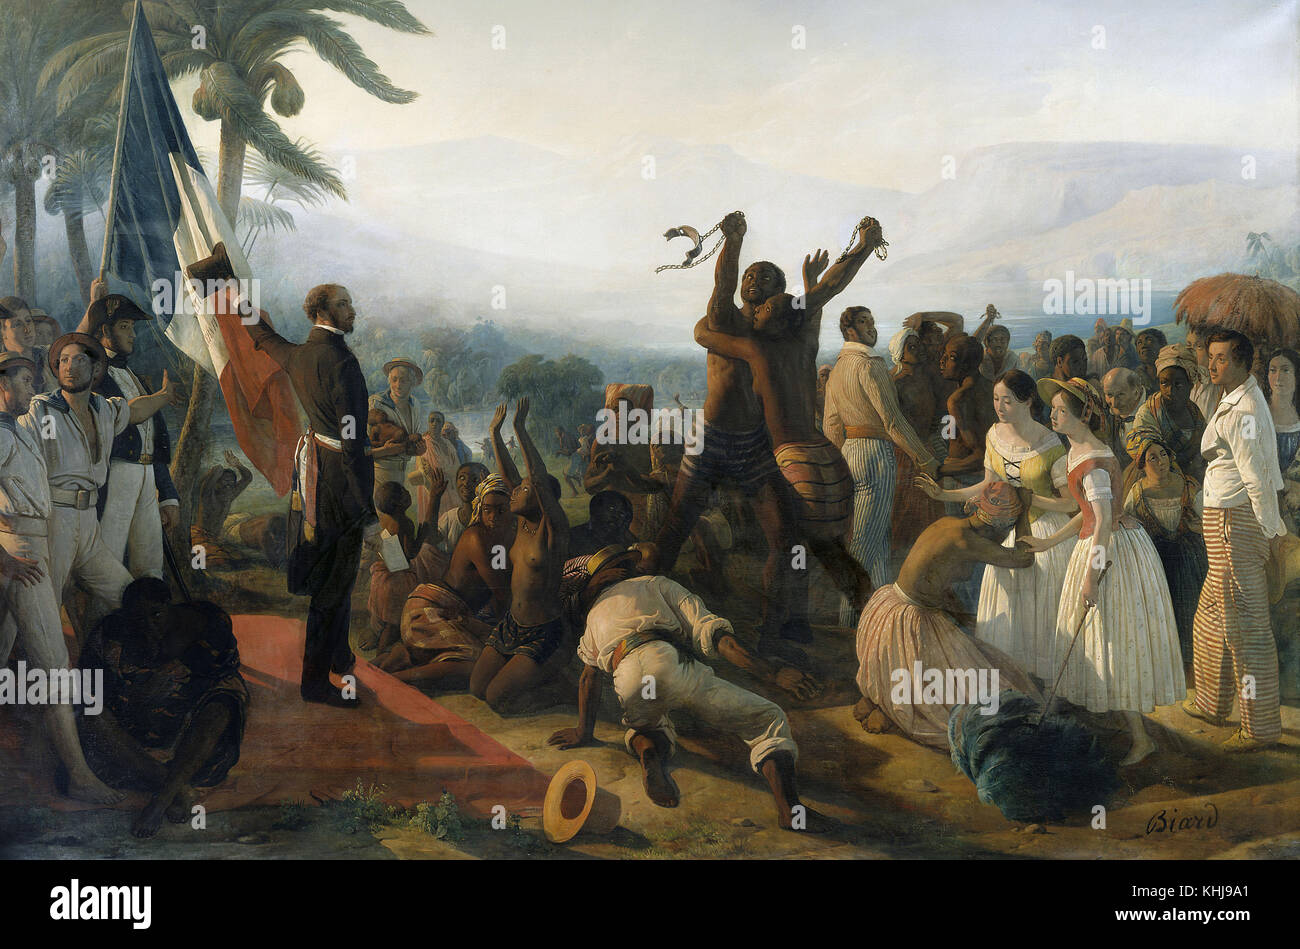 BIARD FRANCOIS AUGUSTE - PPROCLAMATION OF THE ABOLITION OF SLAVERY IN THE FRENCH COLONIES  (APRIL 23,1848) - Stock Image